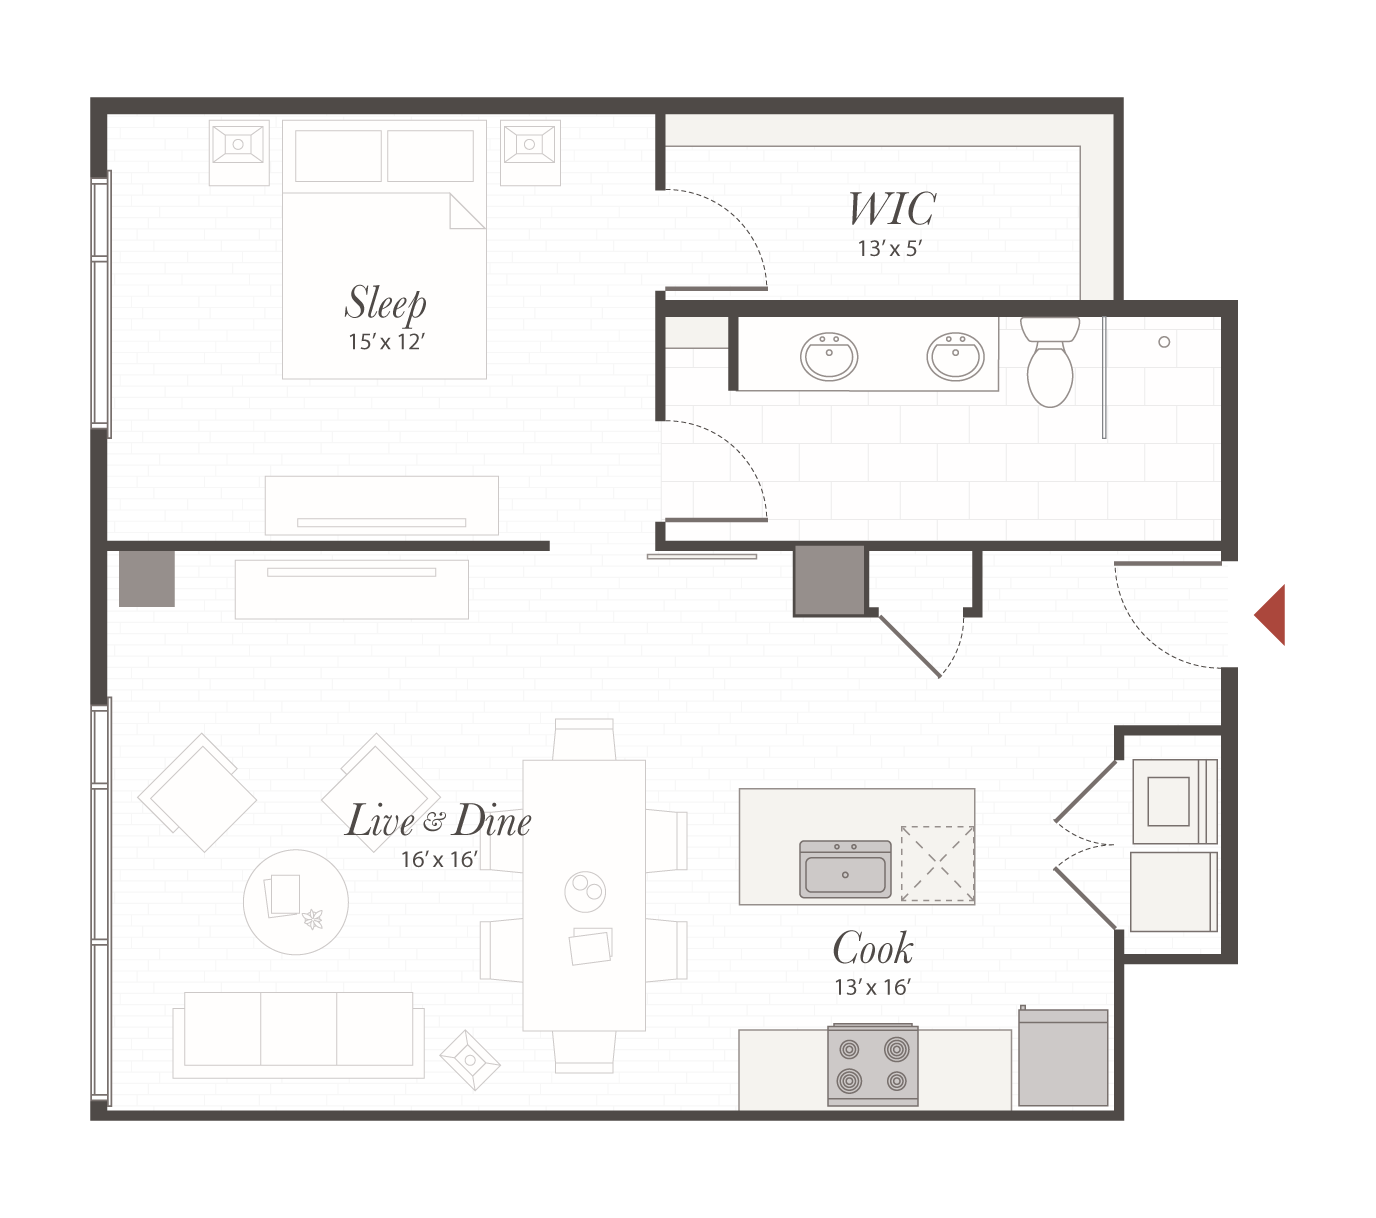 P6 Floor Plan 1 Bedroom Luxury Apartment Cincinnati Oh